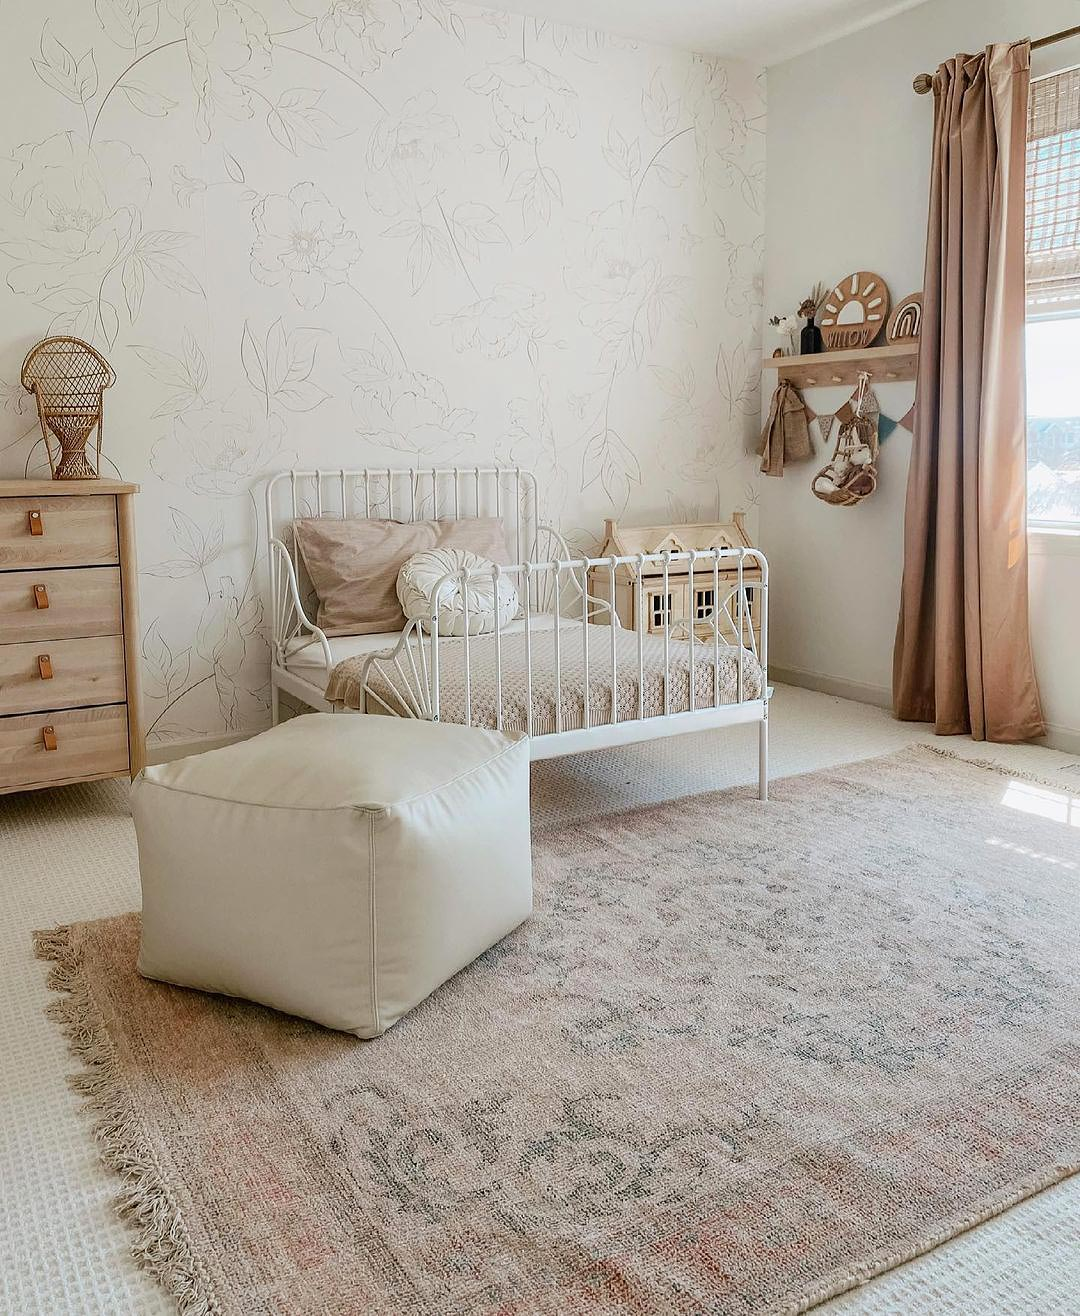 Subtle bohemian style girls room interior with white bed and light wood furniture